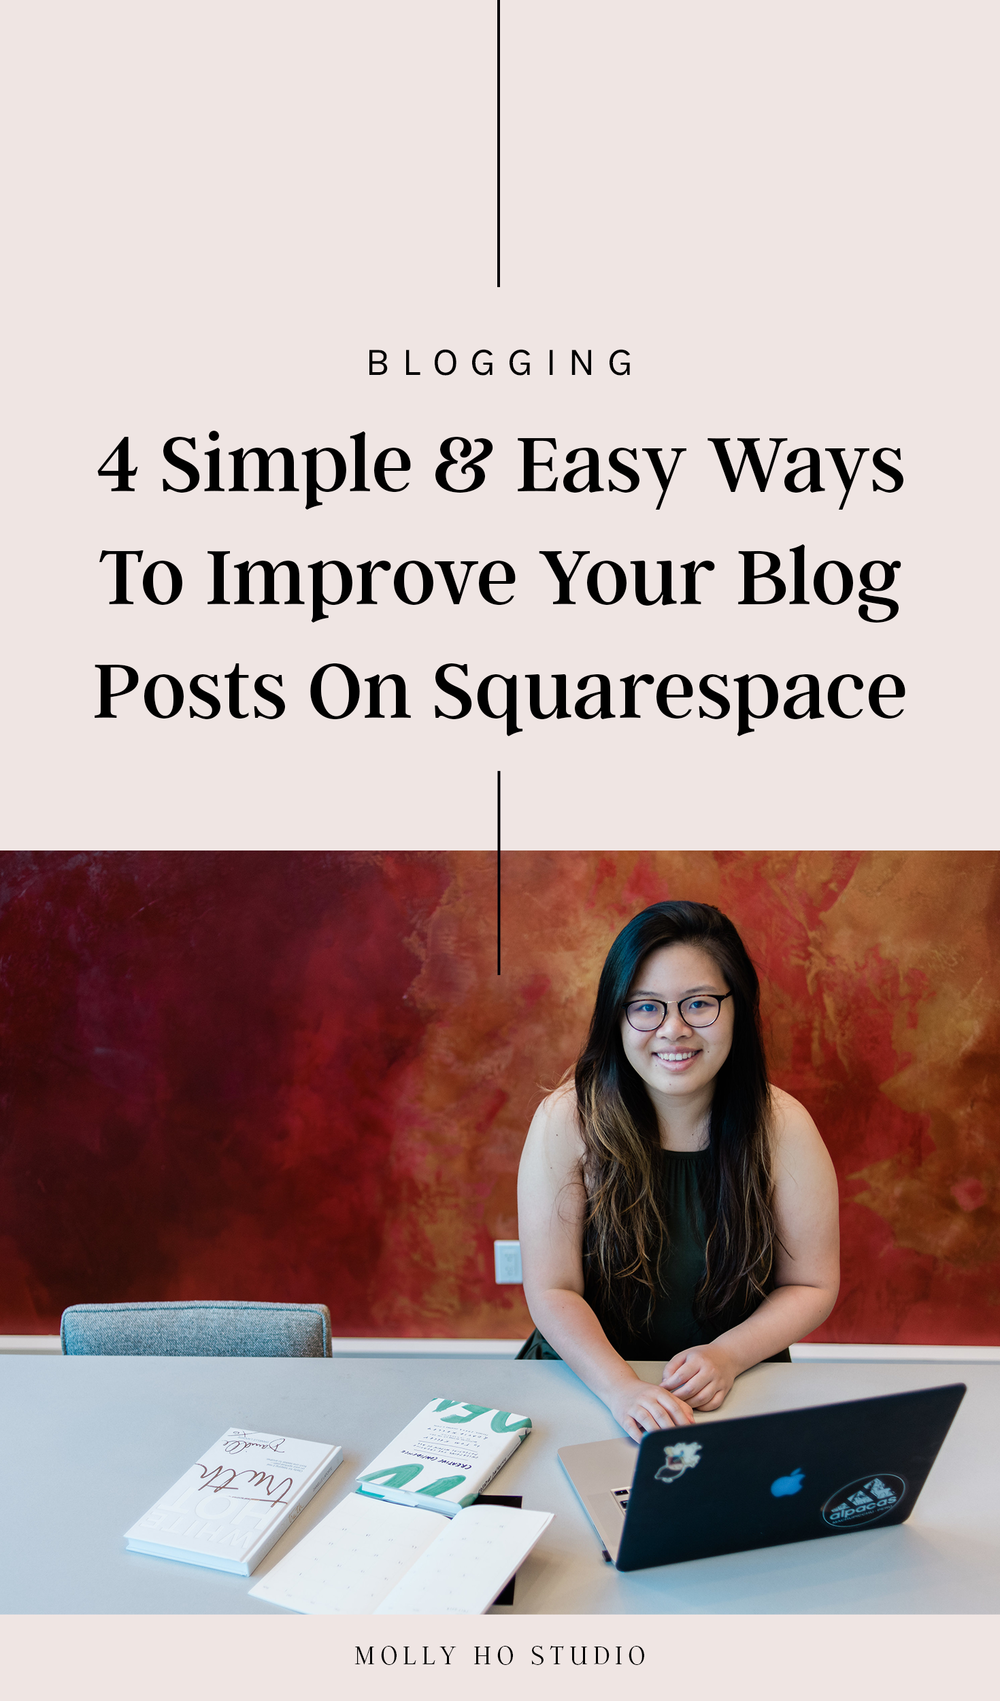 4 Simple And Easy Ways To Improve Your Blog Posts On Squarespace | How To Grow Your Business Blog | How To Structure A Blog Post | How To Write A Great Blog Post | Blogging Tips For Creative Entrepreneurs and Personal Brands | How To Format Your Blog Posts | Squarespace Blog Tips | Is Squarespace Good For Blogging | Improve Your Blog Traffic | Molly Ho Studio